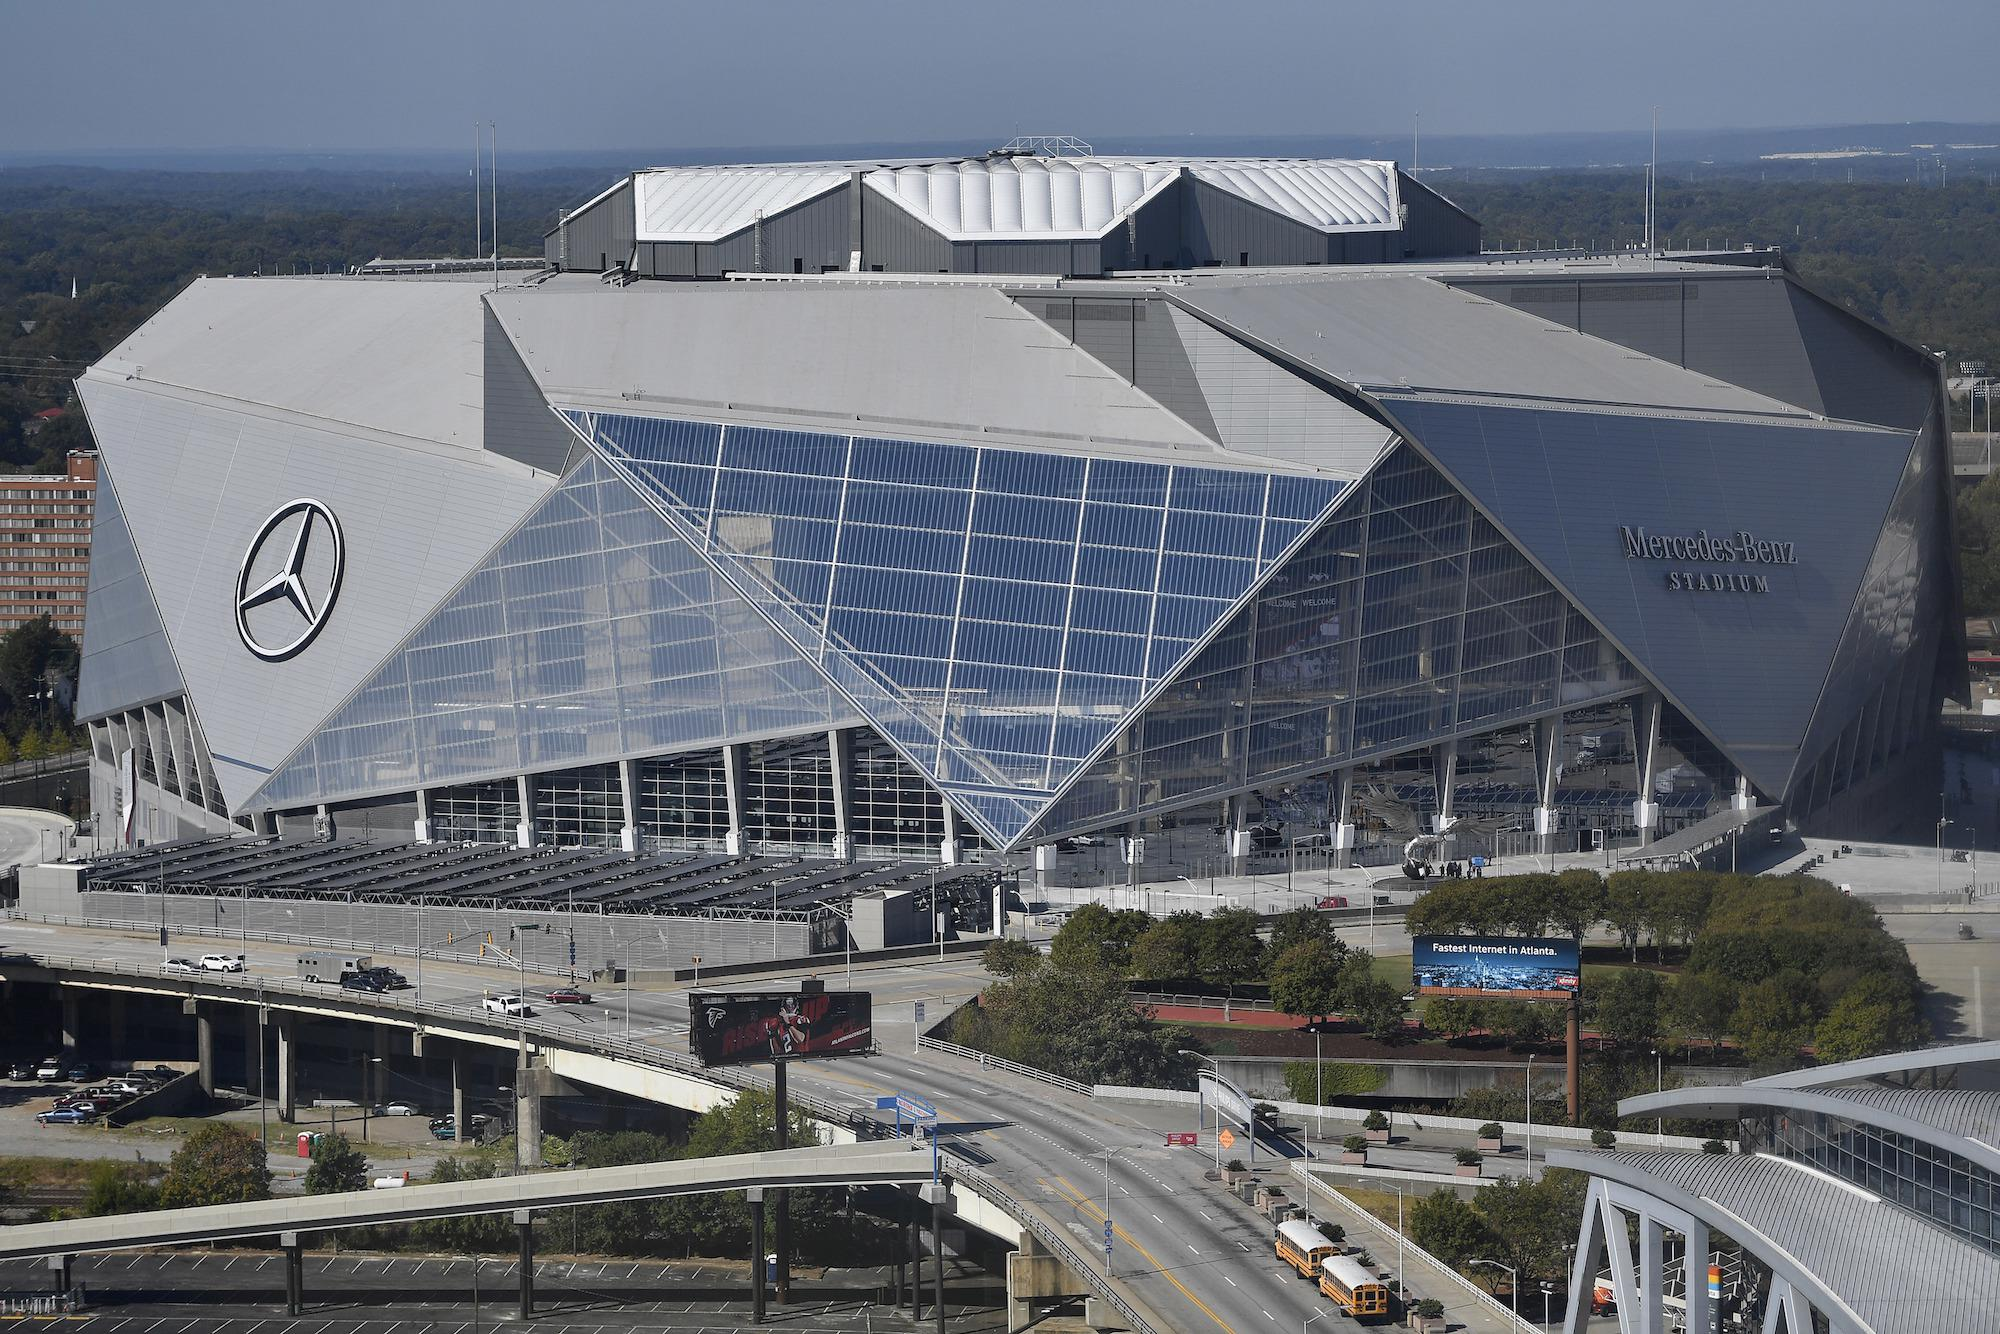 Mercedes benz stadium atlanta idea di immagine auto for Hotel near mercedes benz stadium atlanta